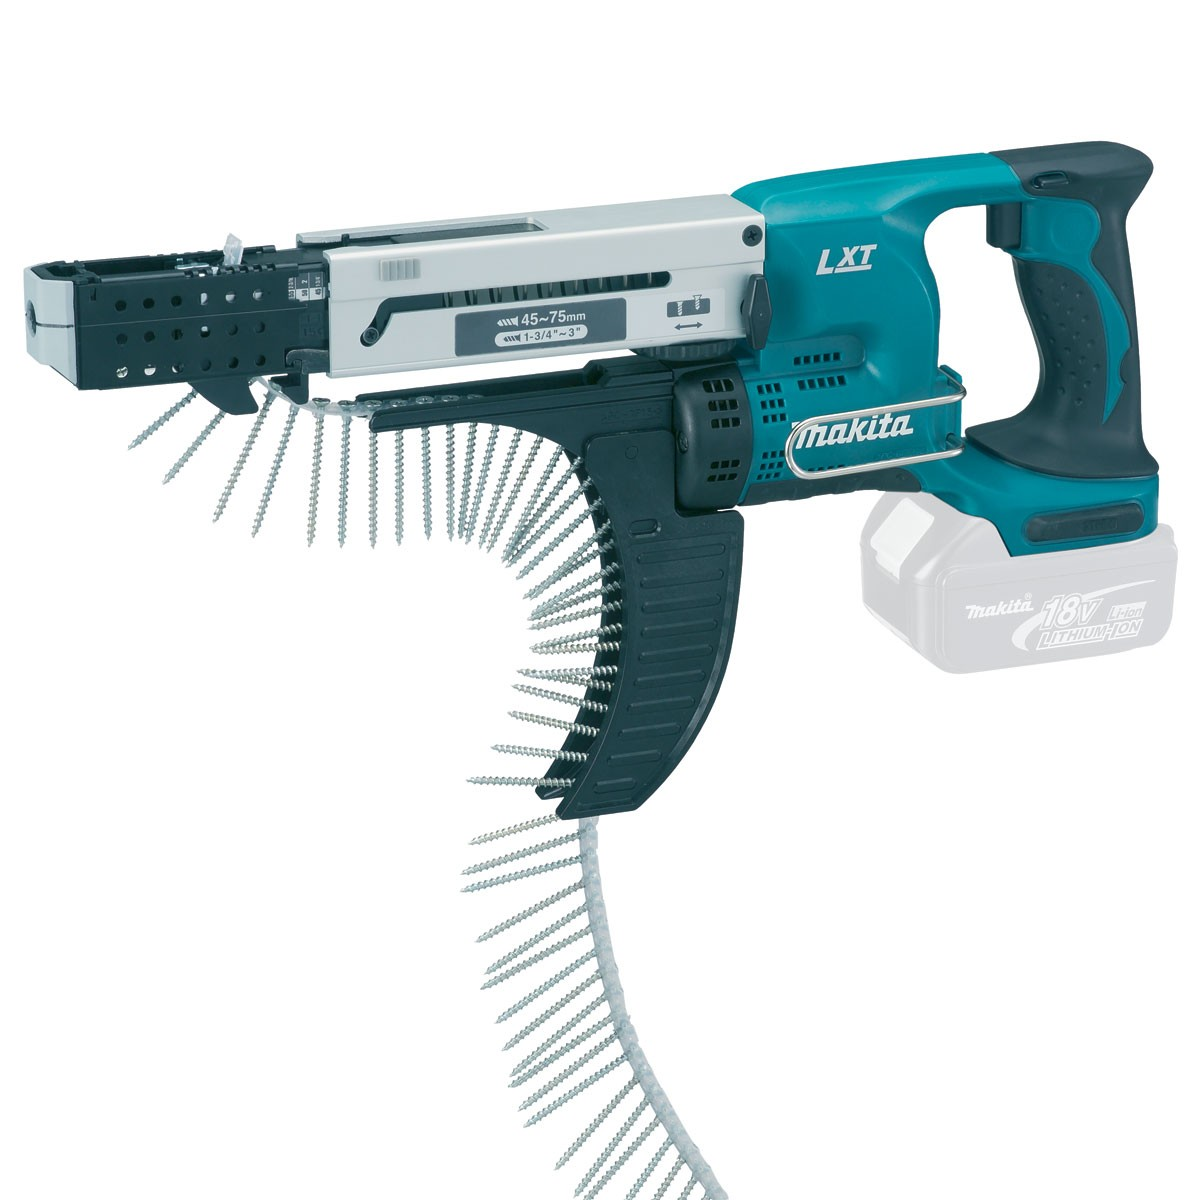 Makita DFR750Z LXT 18v Cordless Auto Feed Screwdriver Body Only